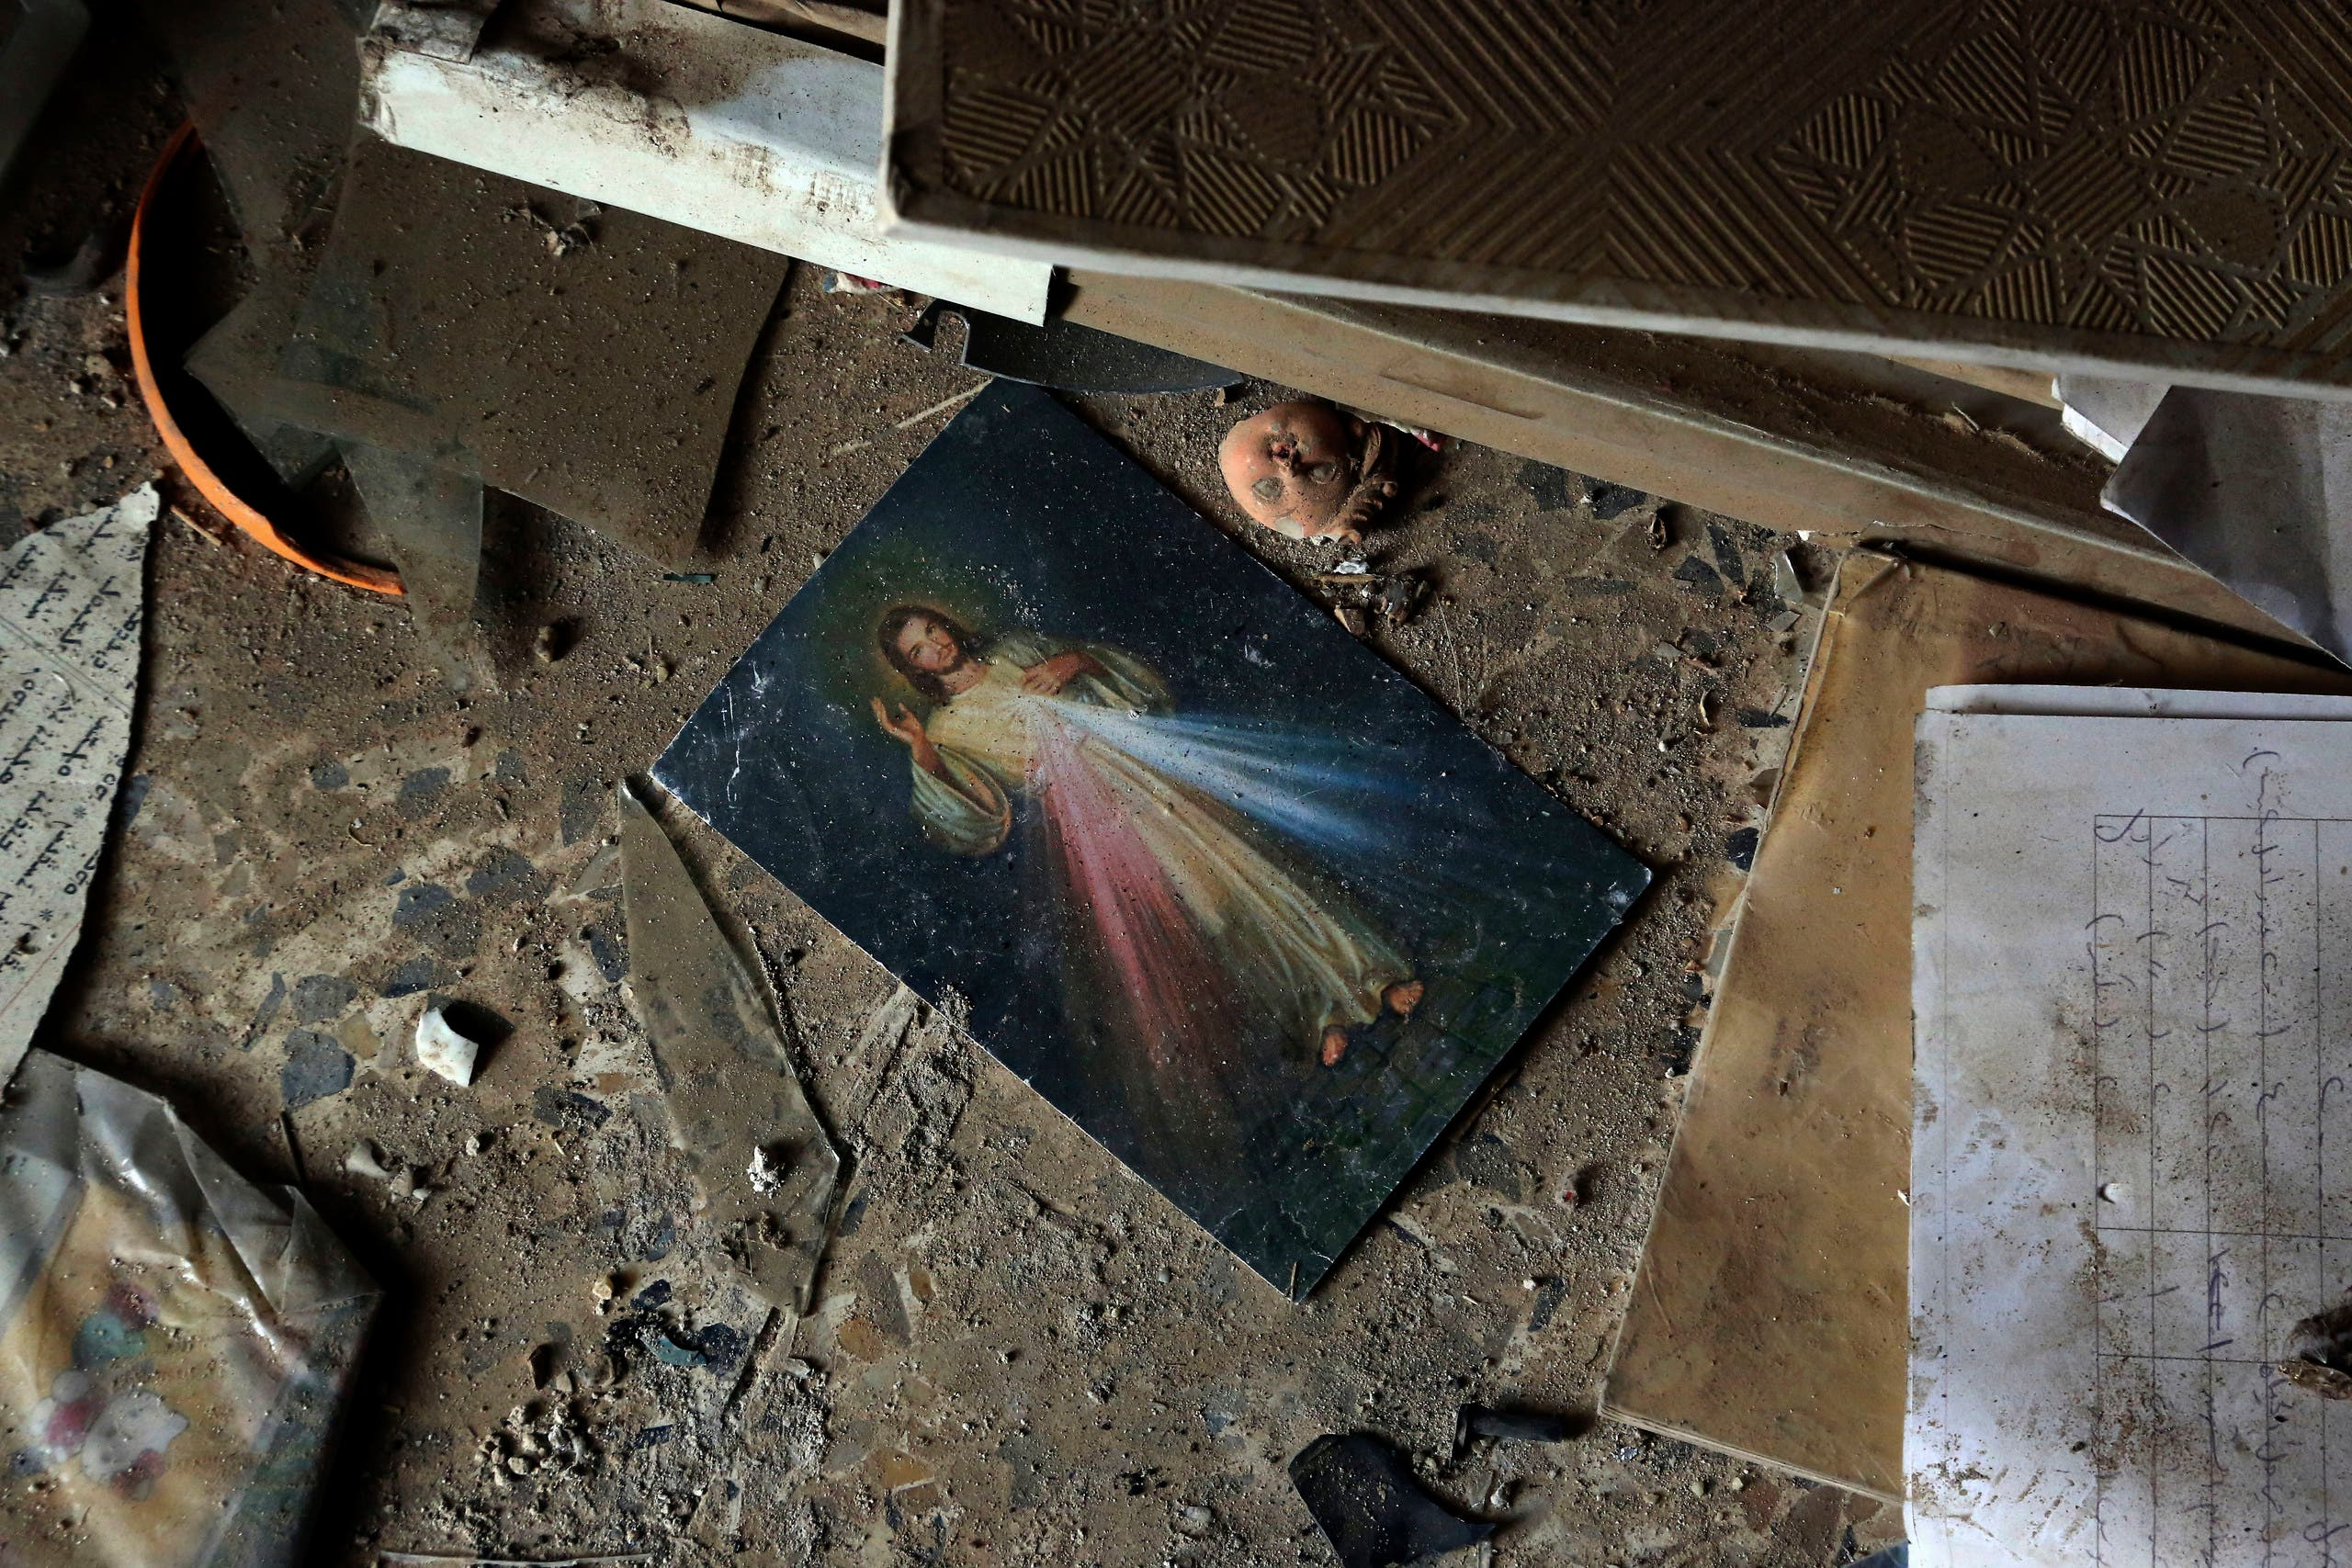 A picture of Jesus Christ lies on the ground inside a church damaged by ISIS militants during their occupation of the predominantly Christian town of Tilkaif, Iraq on Jan. 21, 2017. (AP)